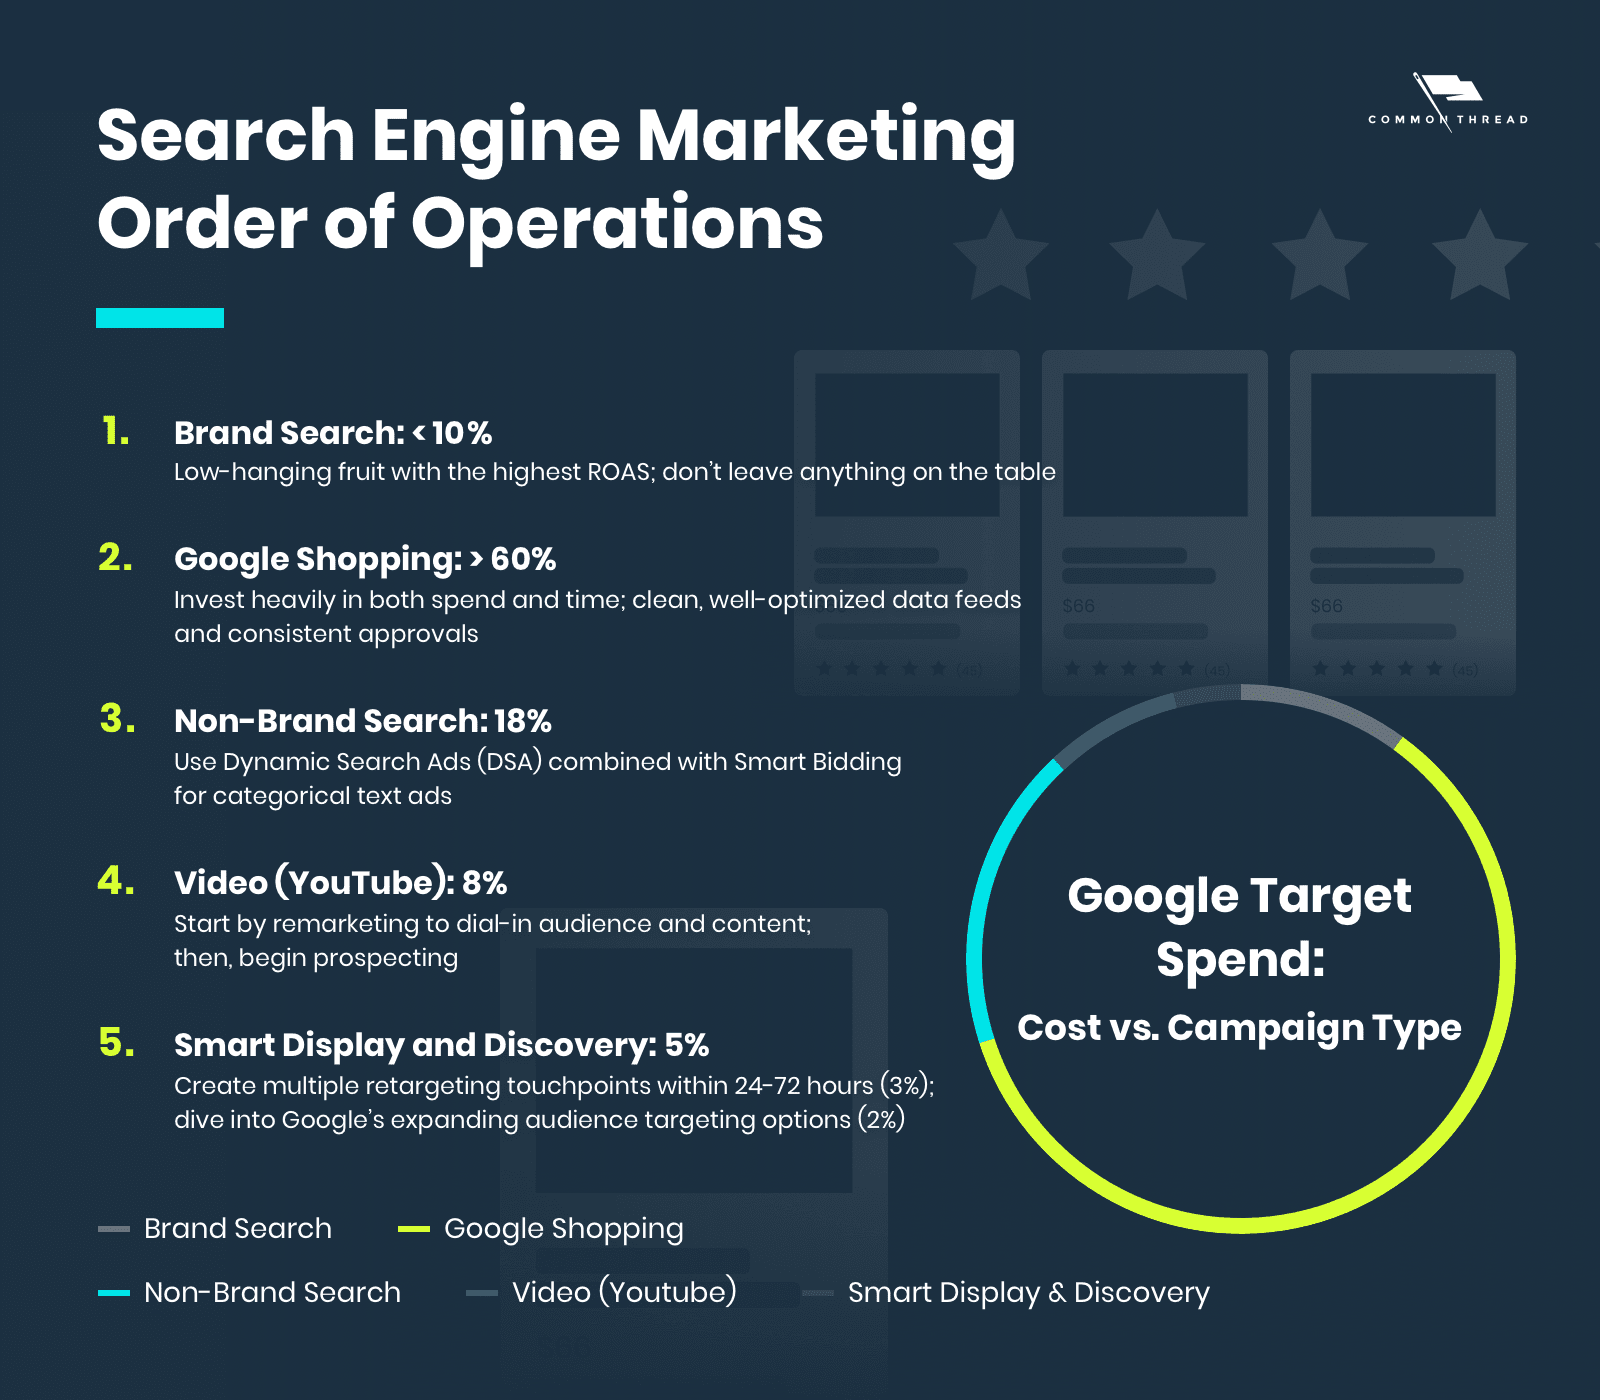 Search Enging Marketing Order of Operations